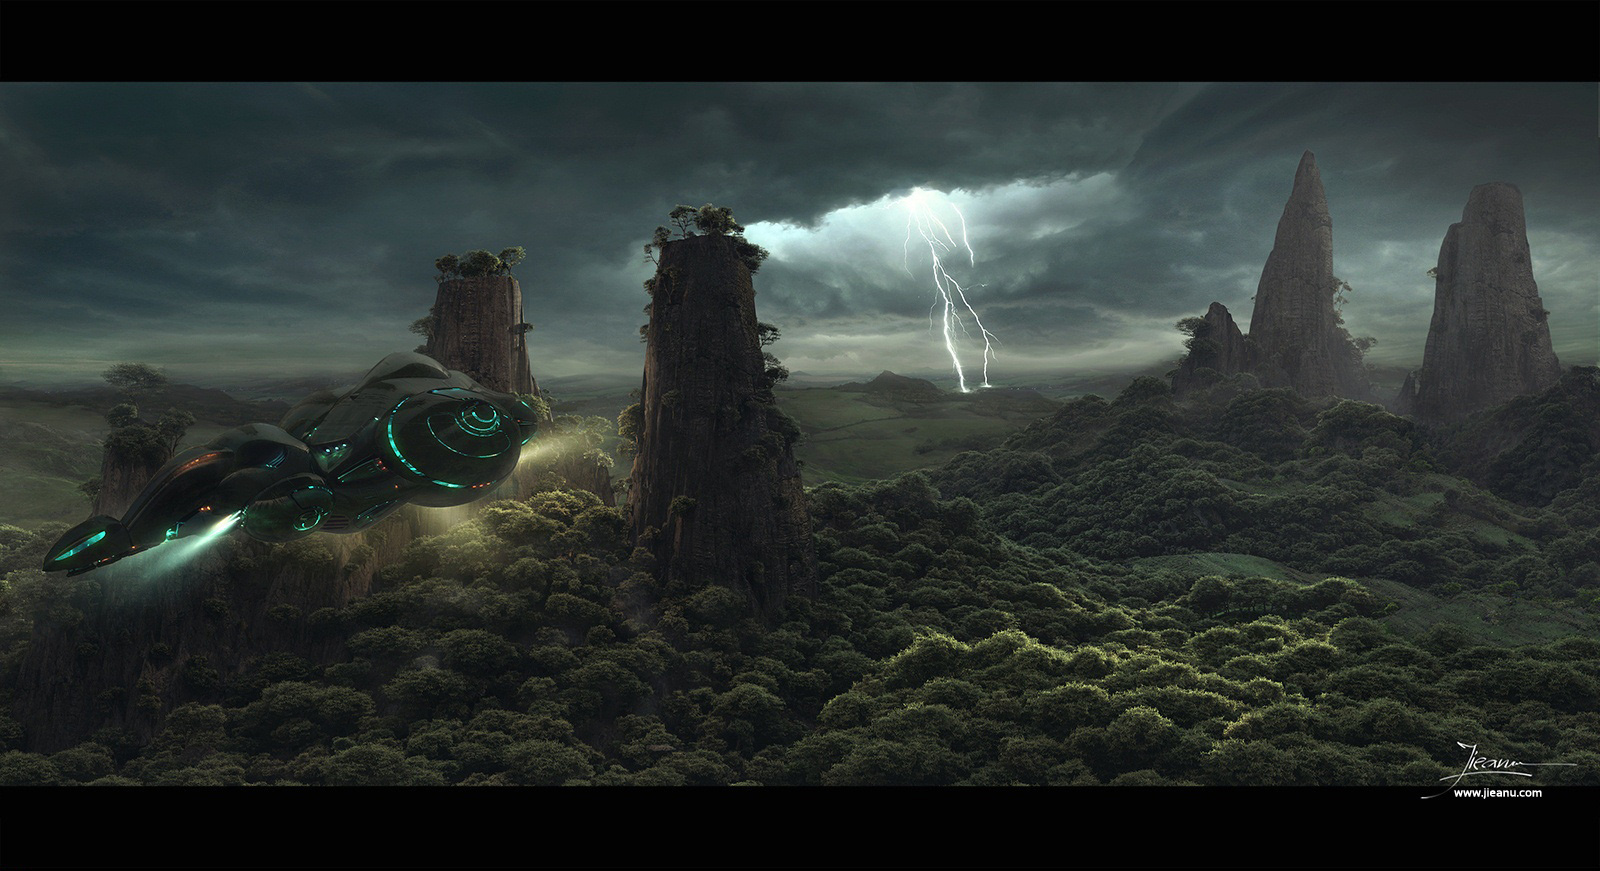 matte painter Dragos Jieanu